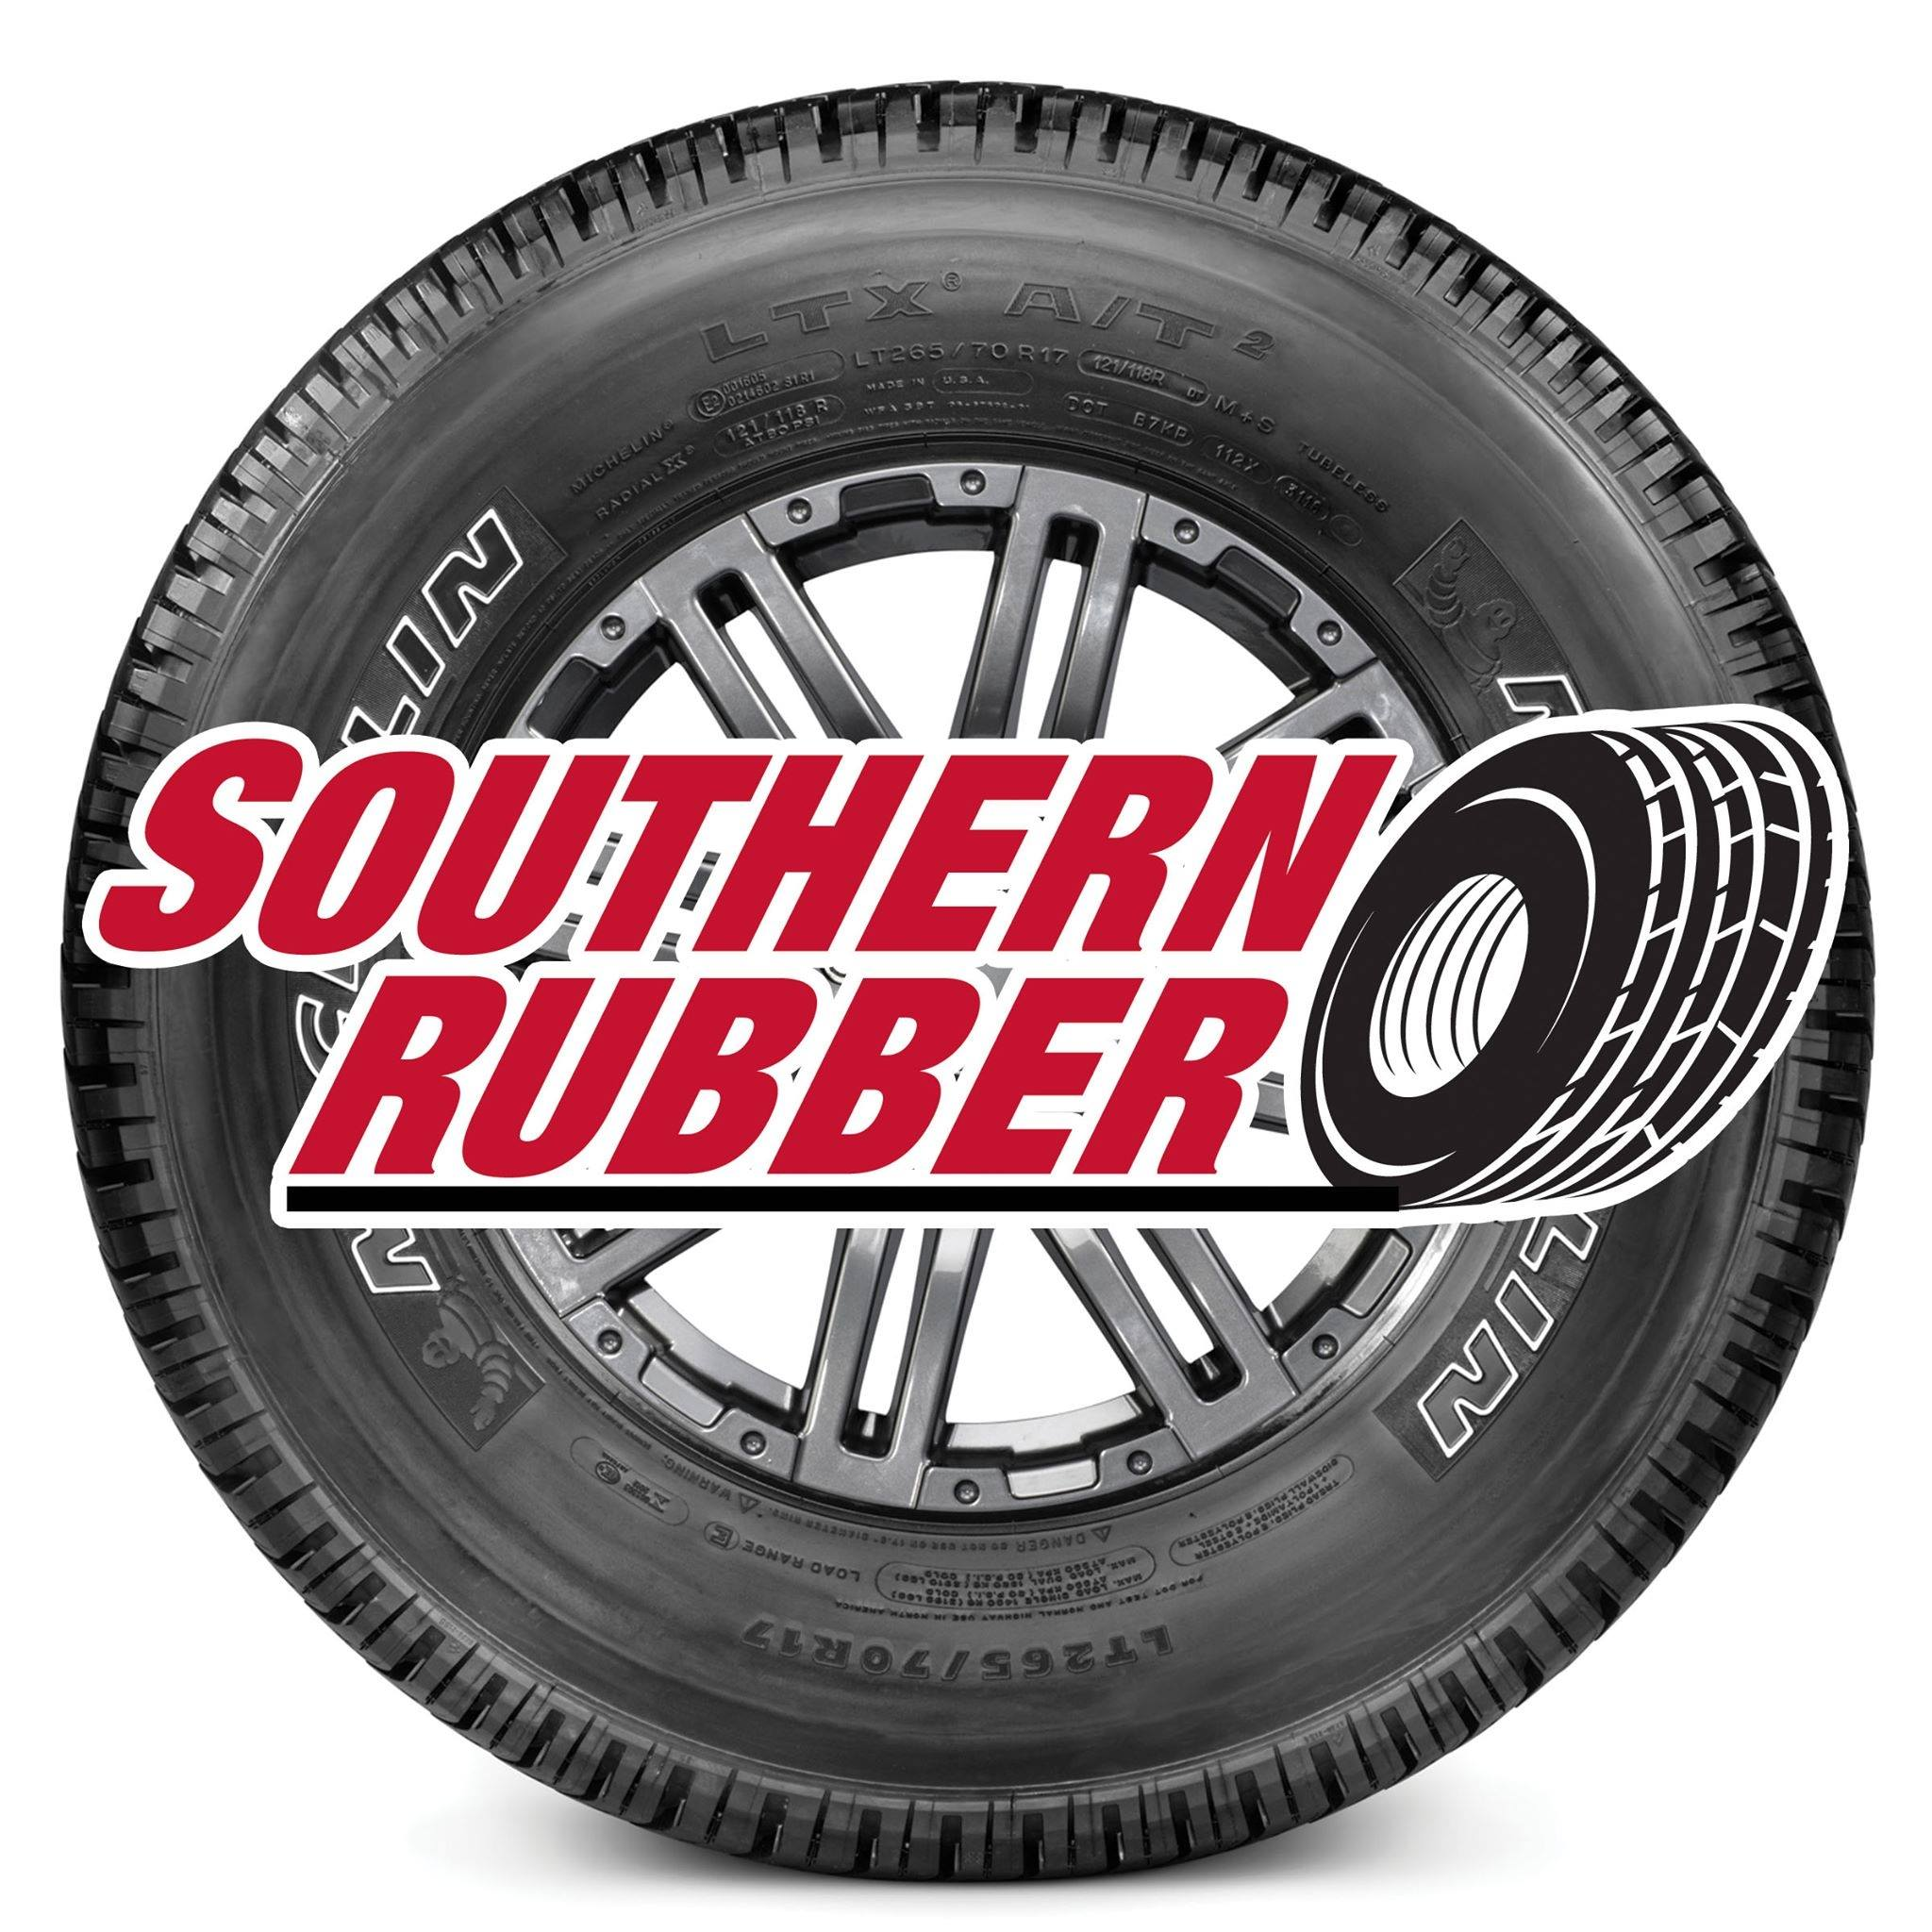 Company logo of Southern Rubber Tire